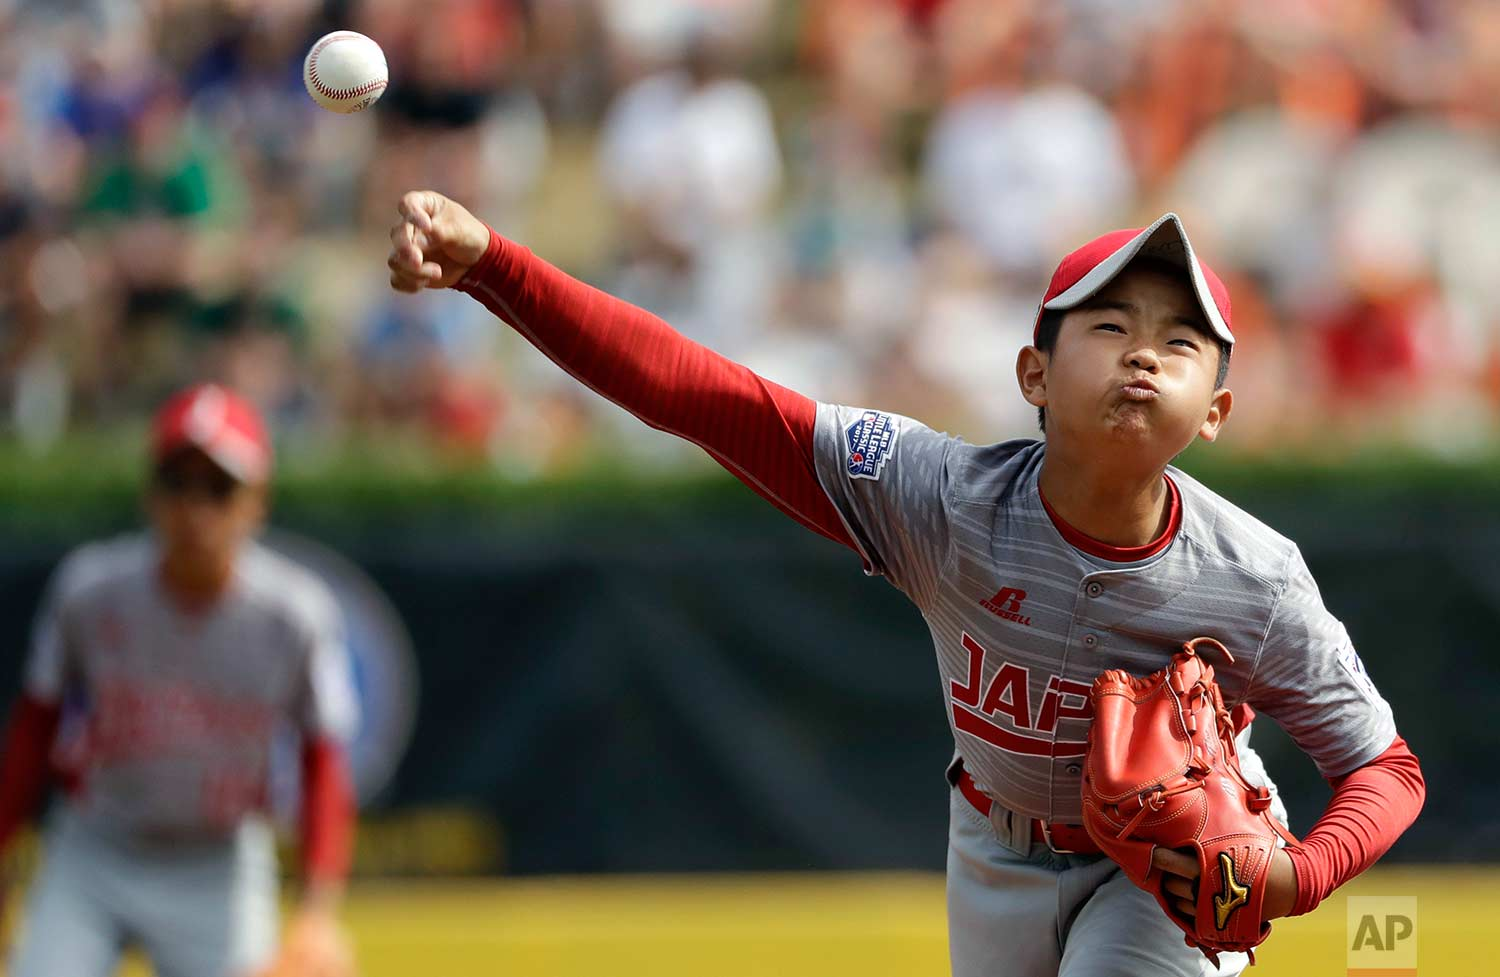 Japan's Tsubasa Tomii pitches during the first inning of Little League World Series Championship baseball game against Lufkin, Texas, Sunday, Aug. 27, 2017, in South Williamsport, Pa. (AP Photo/Matt Slocum)